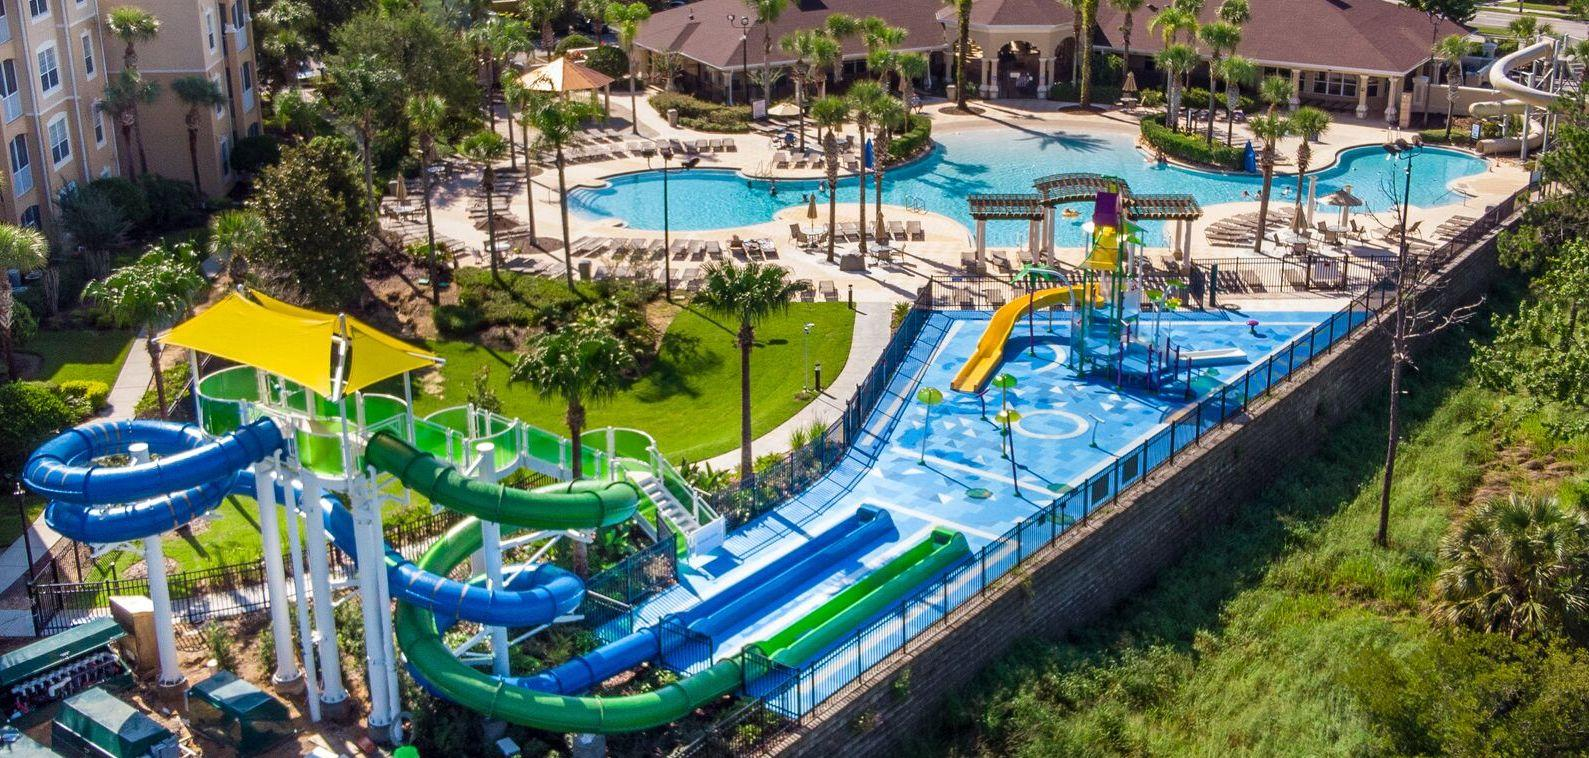 Water slides and water play area